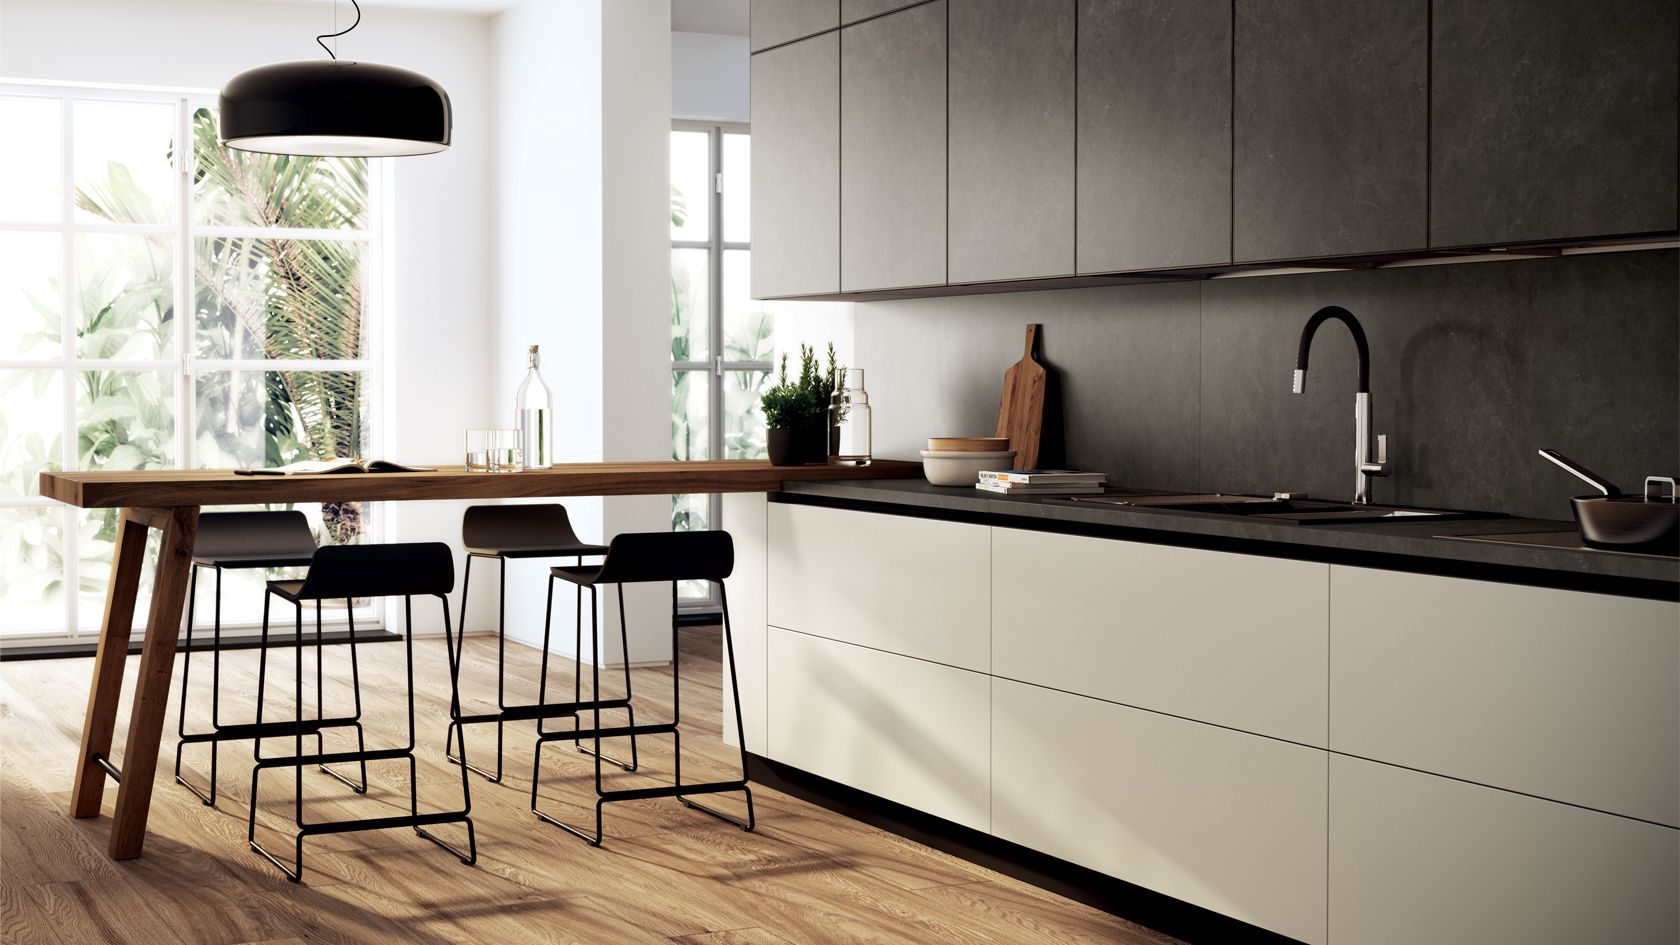 Kitchen Scenery Scavolini Like: Handless drawers. Angled legs for ...